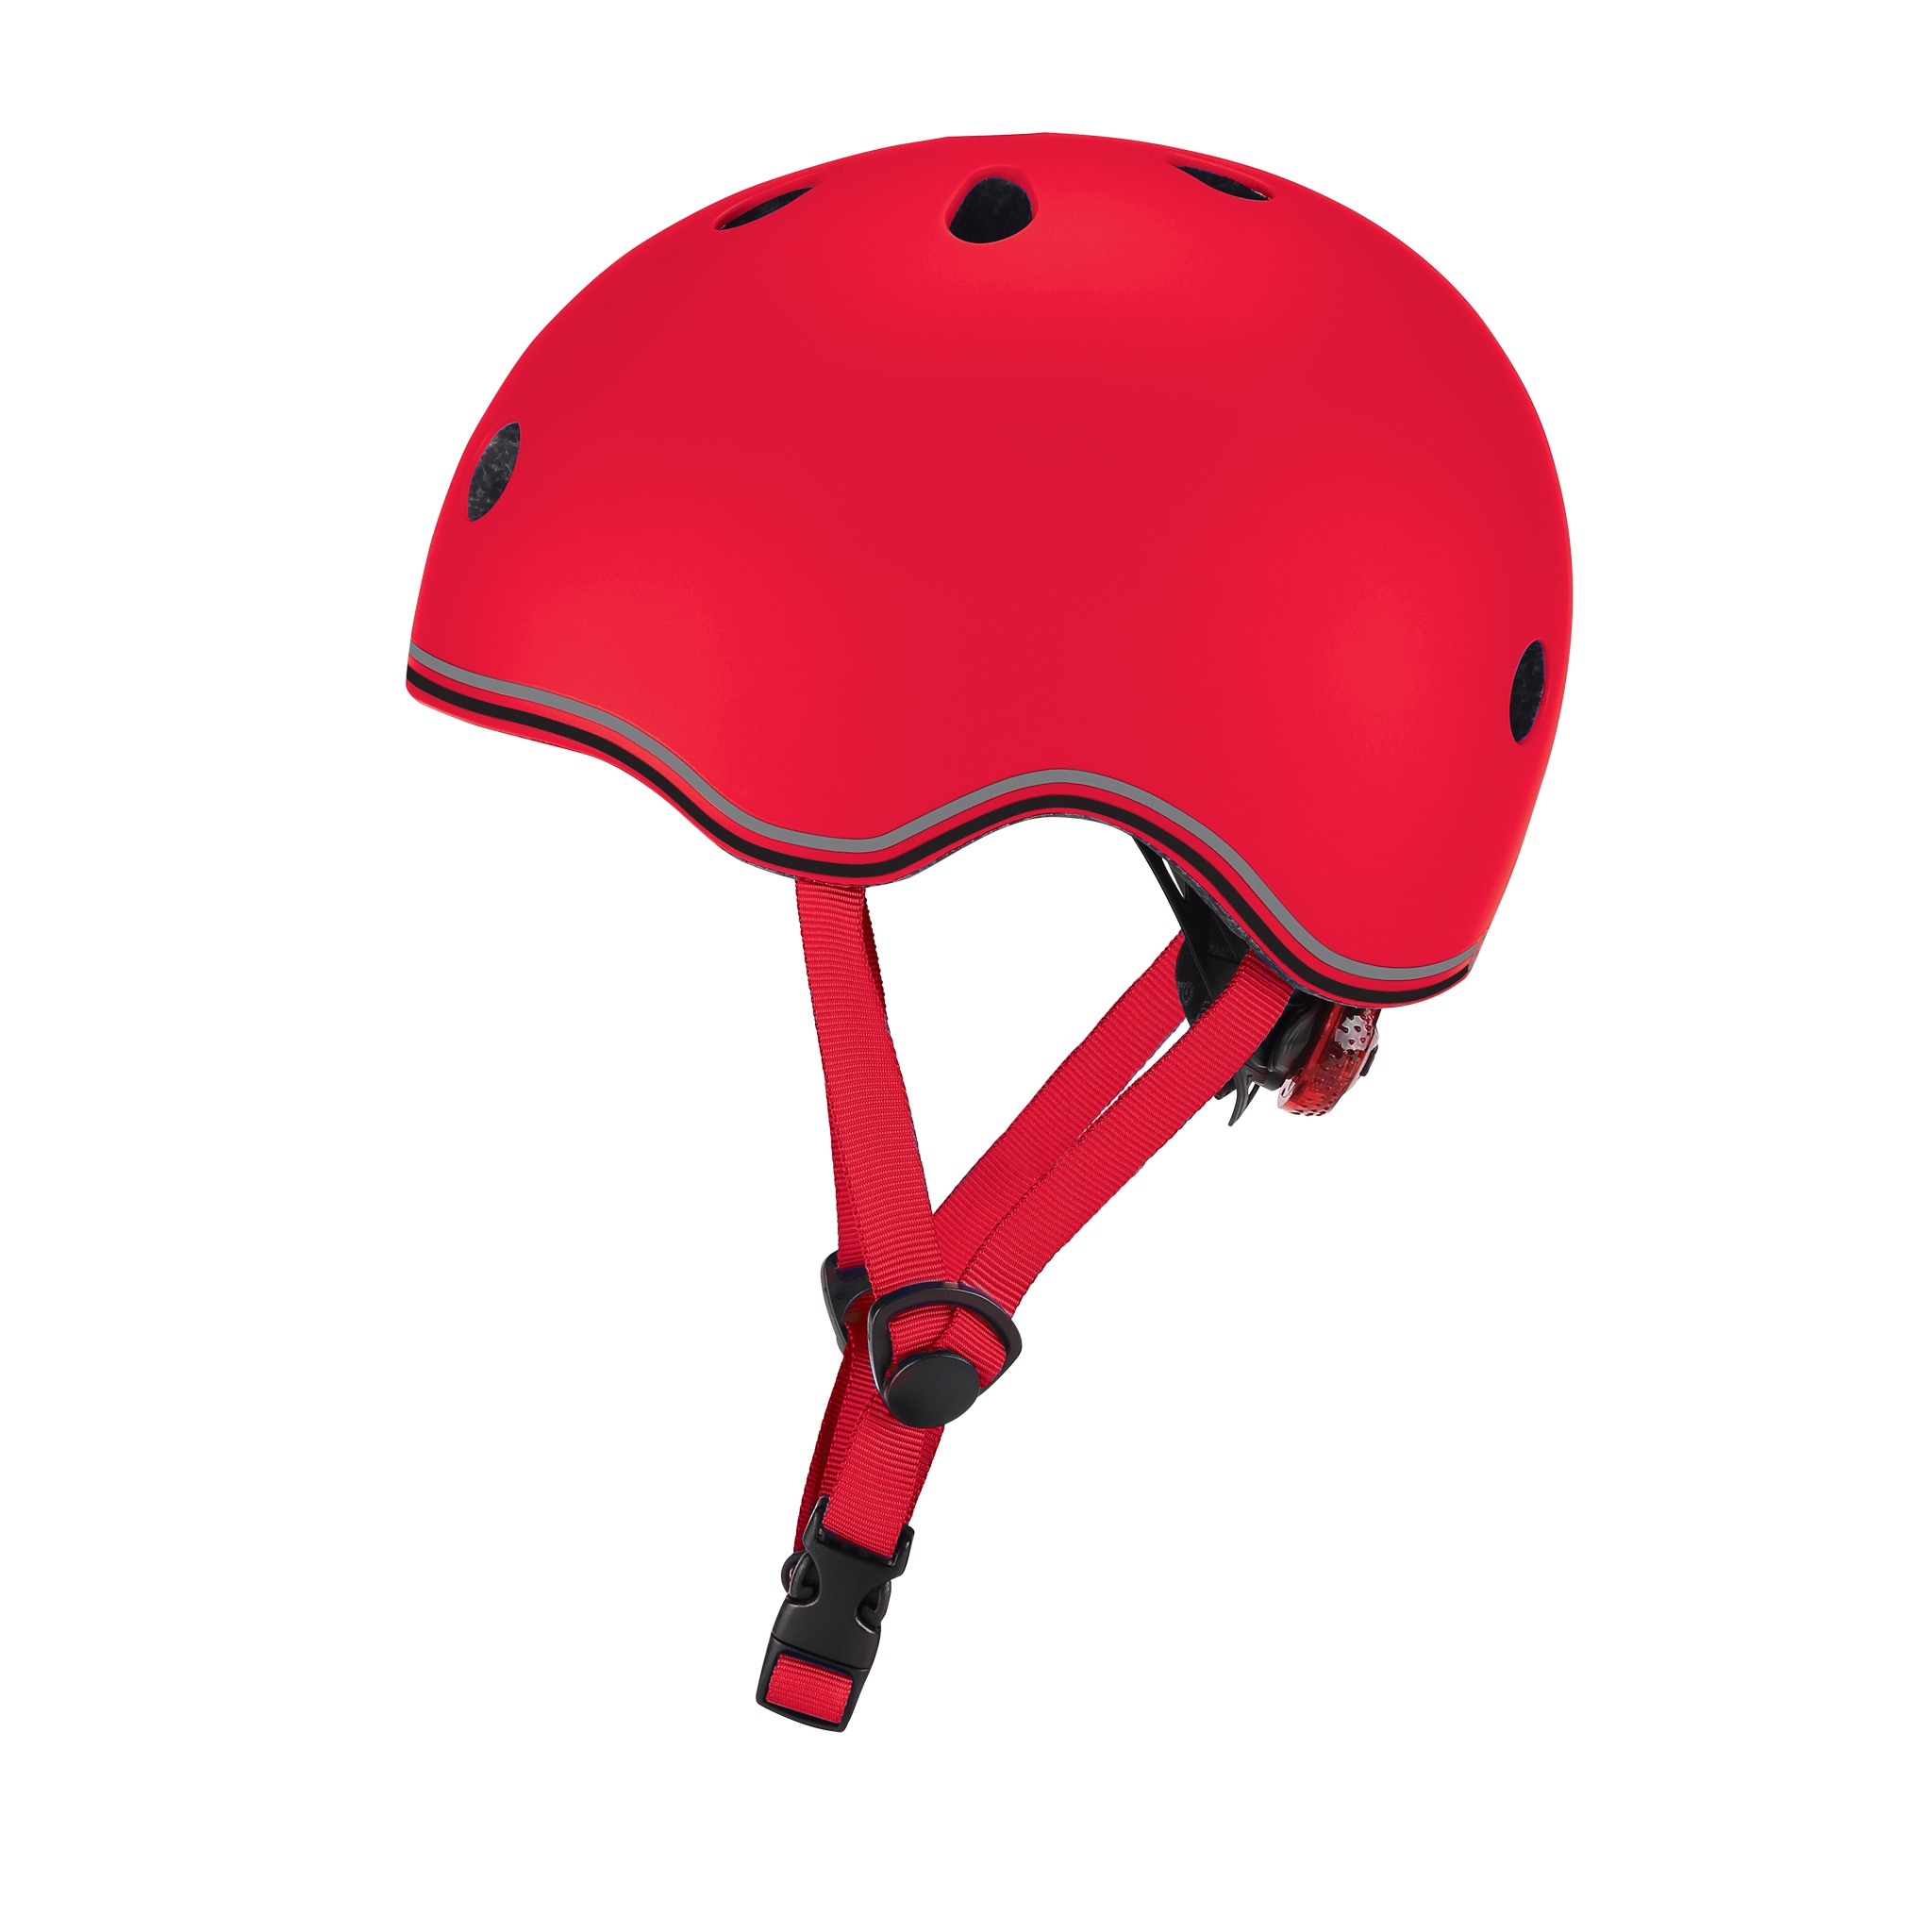 EVO-helmets-scooter-helmets-for-toddlers-with-adjustable-helmet-knob-new-red 1